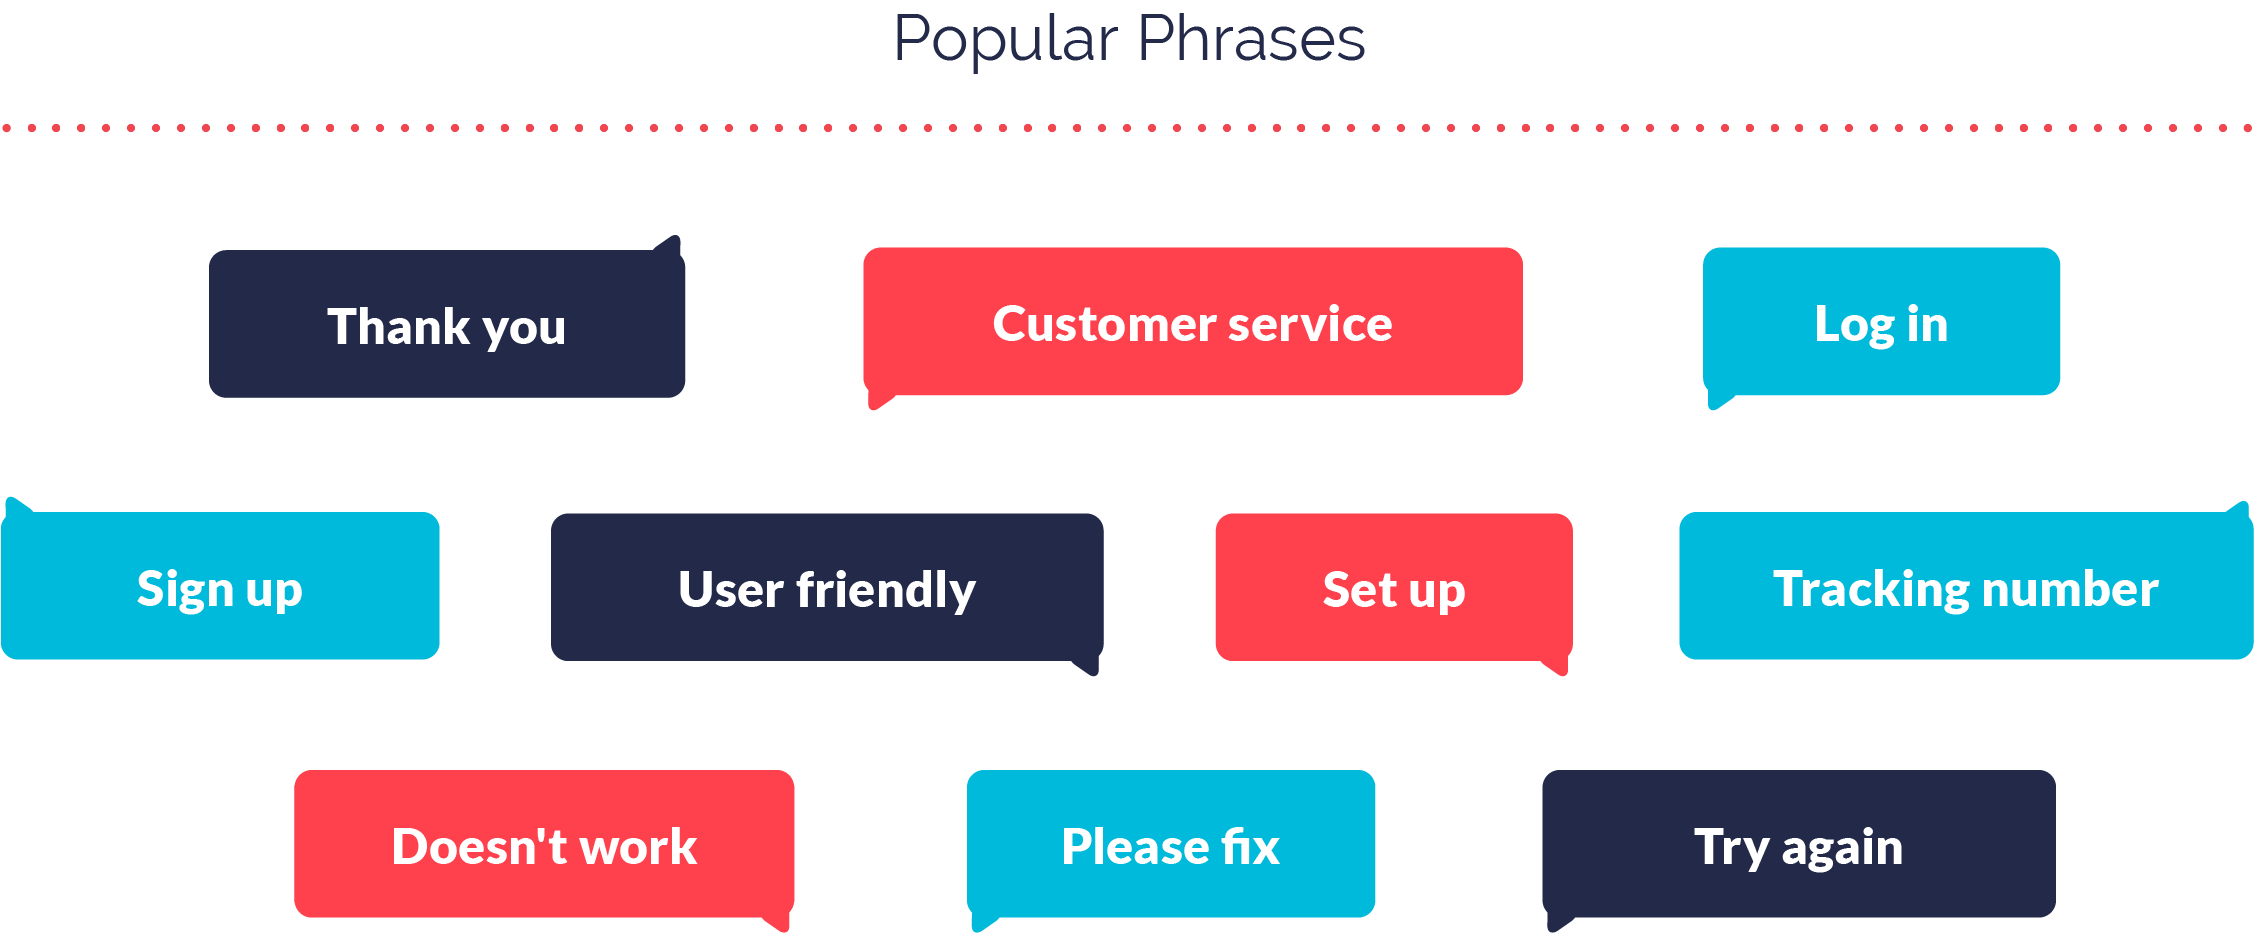 Engagement Benchmarks for Business Services Apps